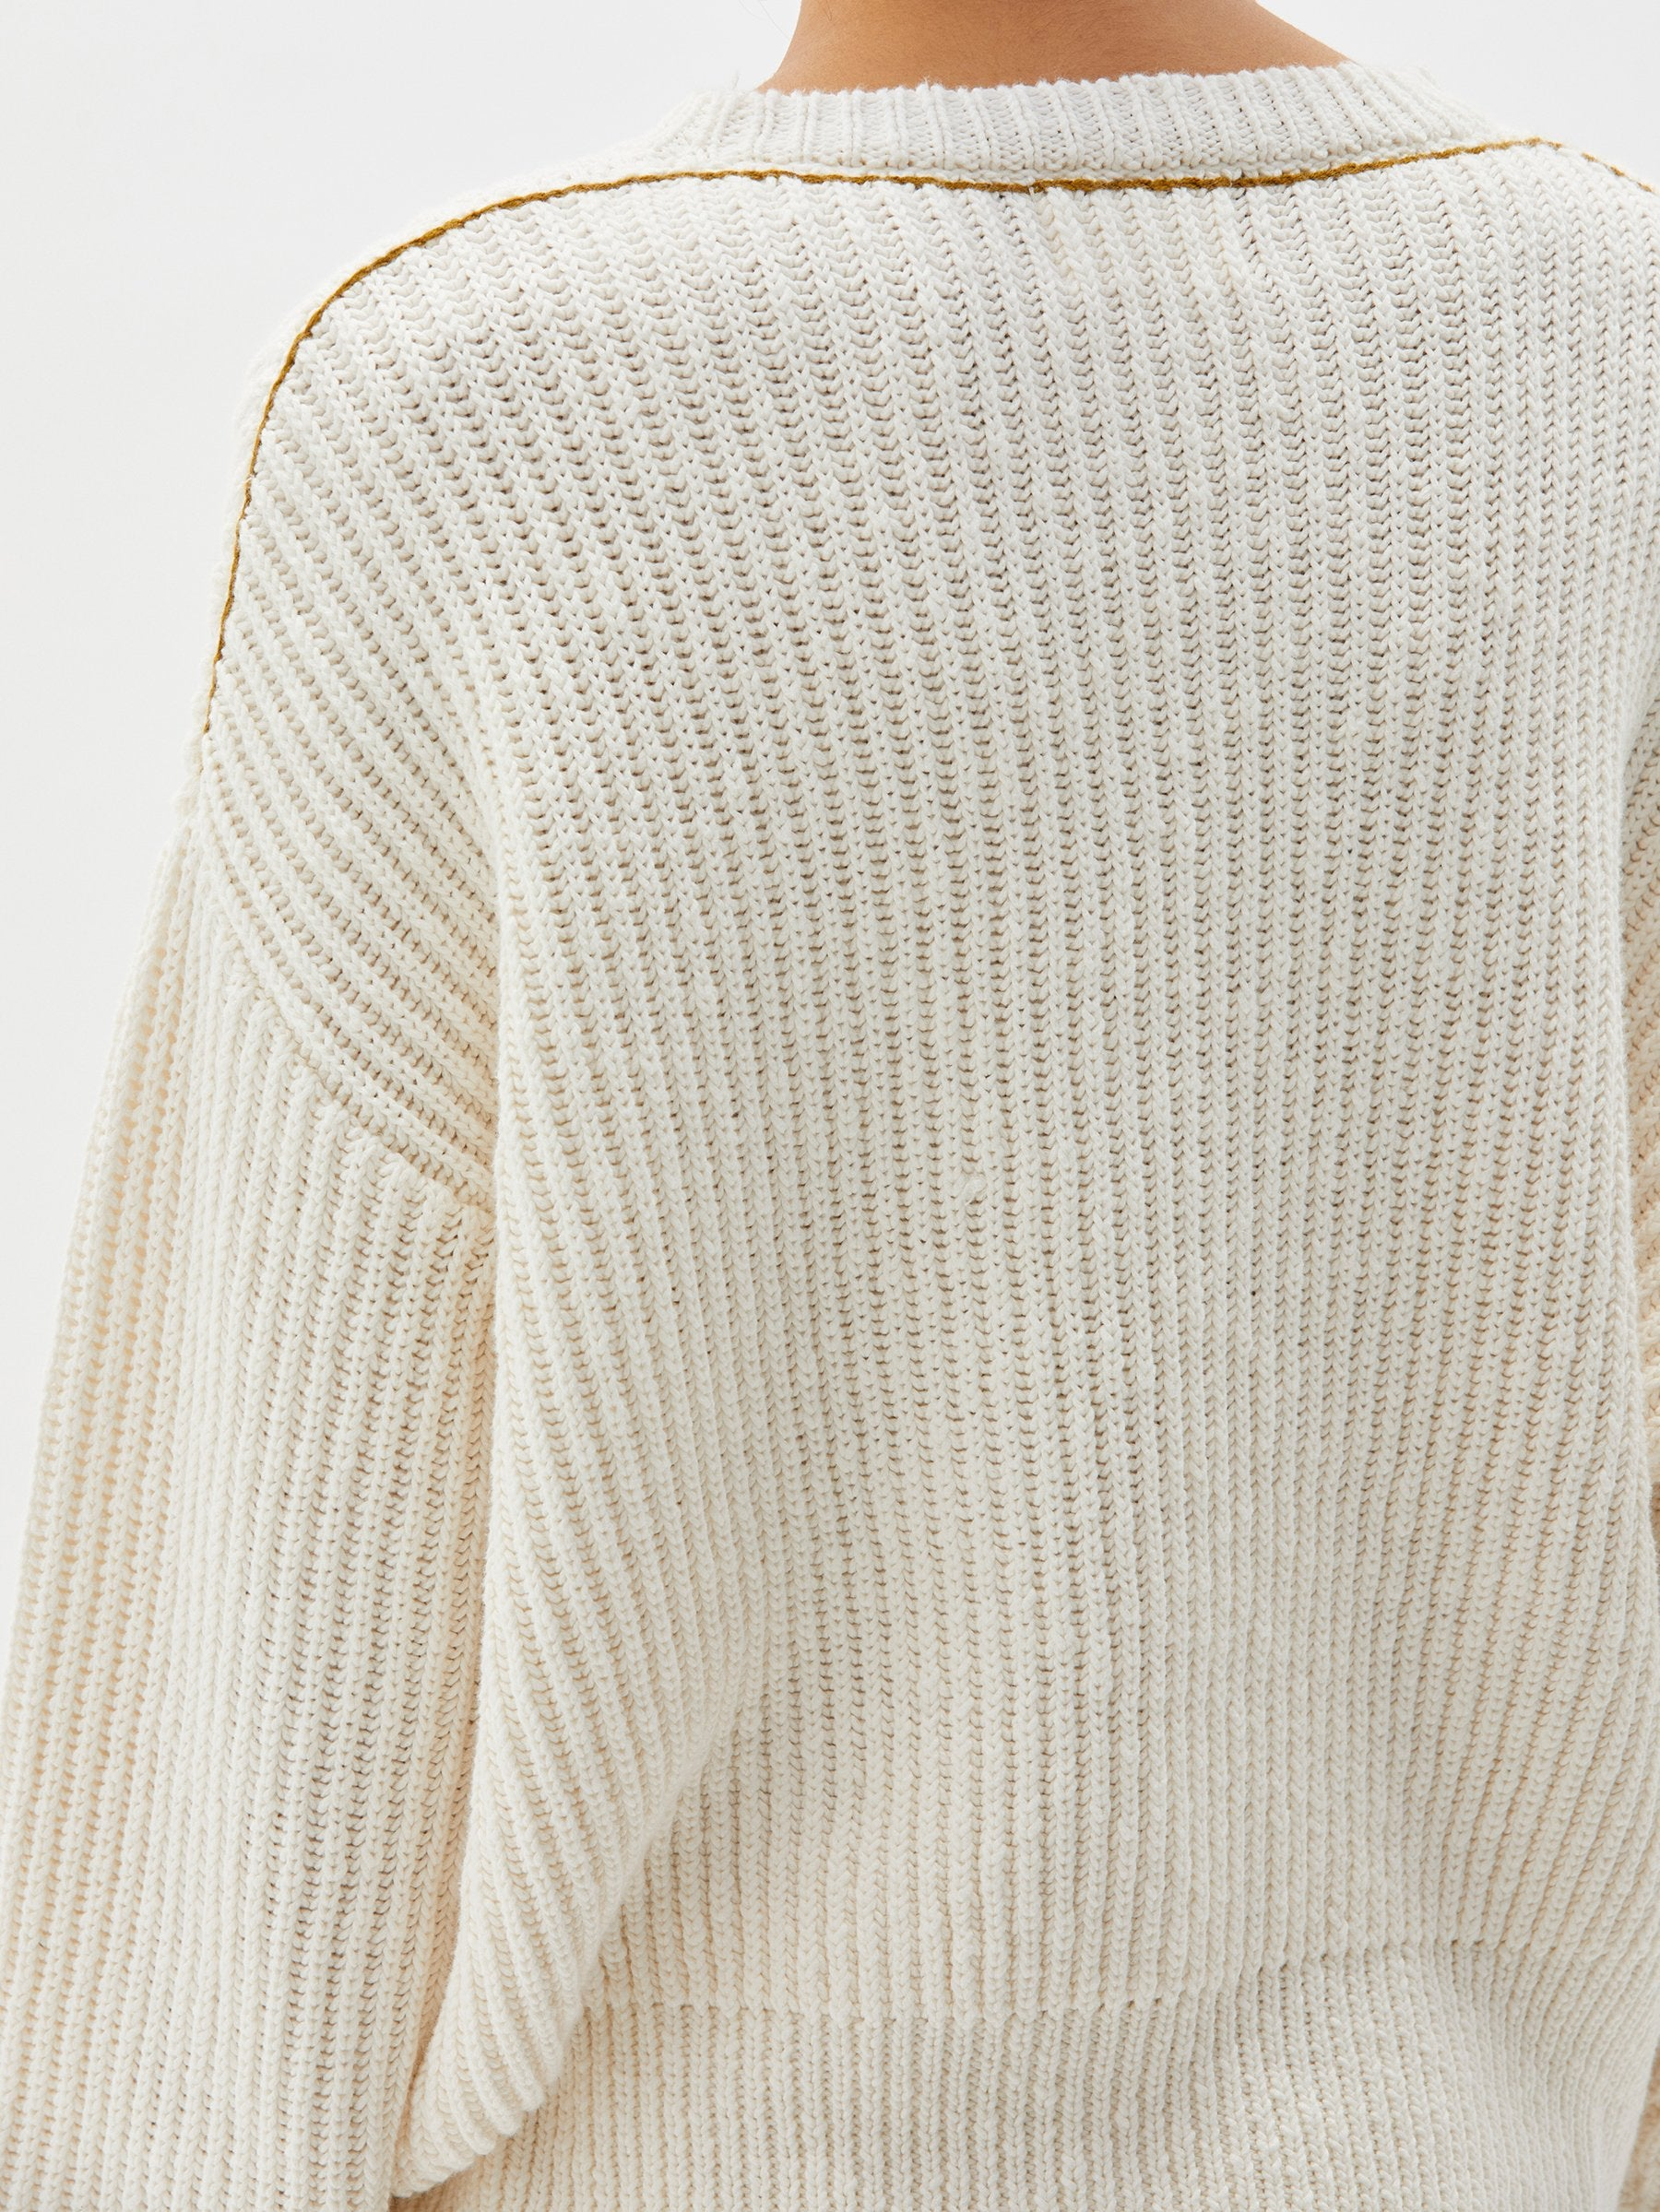 Bassike Ribbed Oversized Crew Knit White